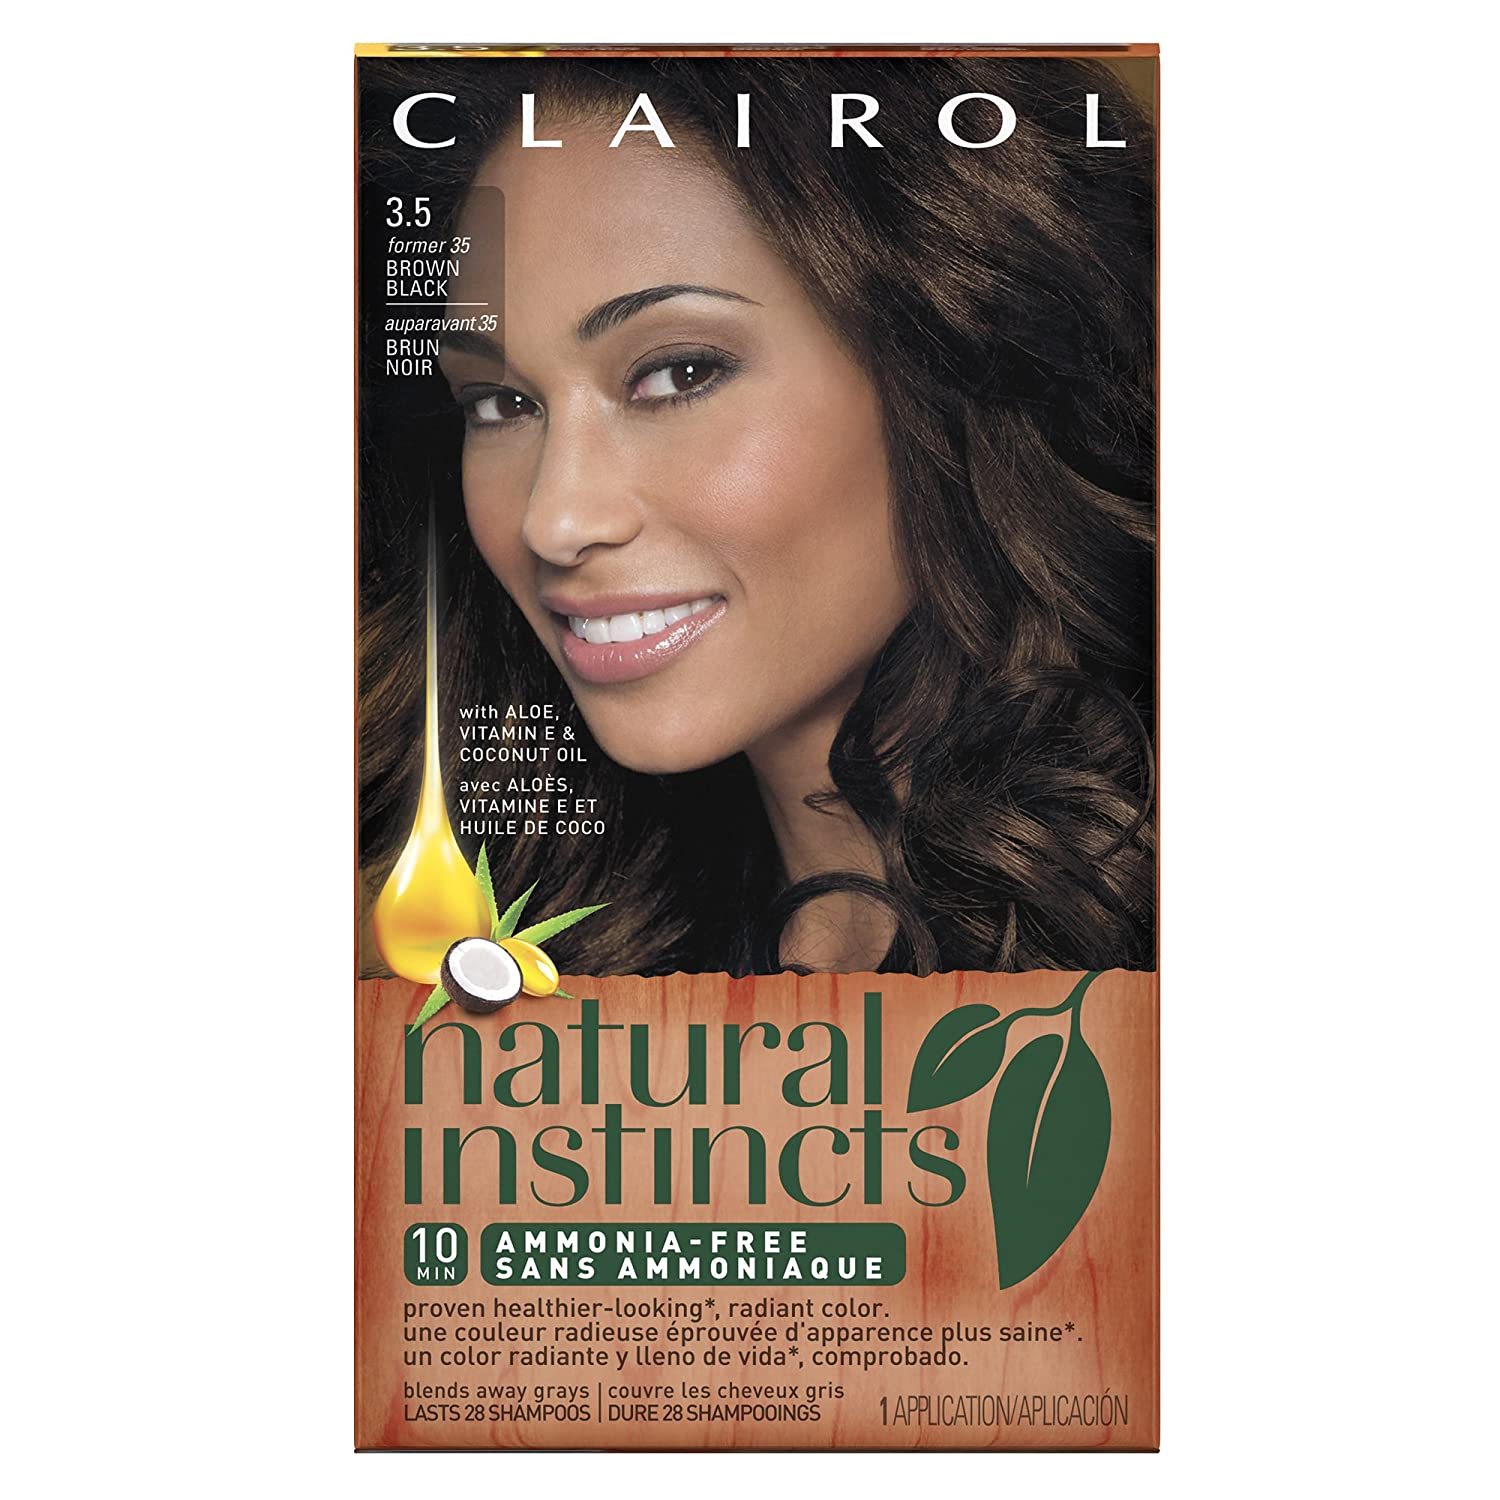 Amazon.com: Clairol Natural Instincts Haircolor 3.5 Brown Black 1 ...